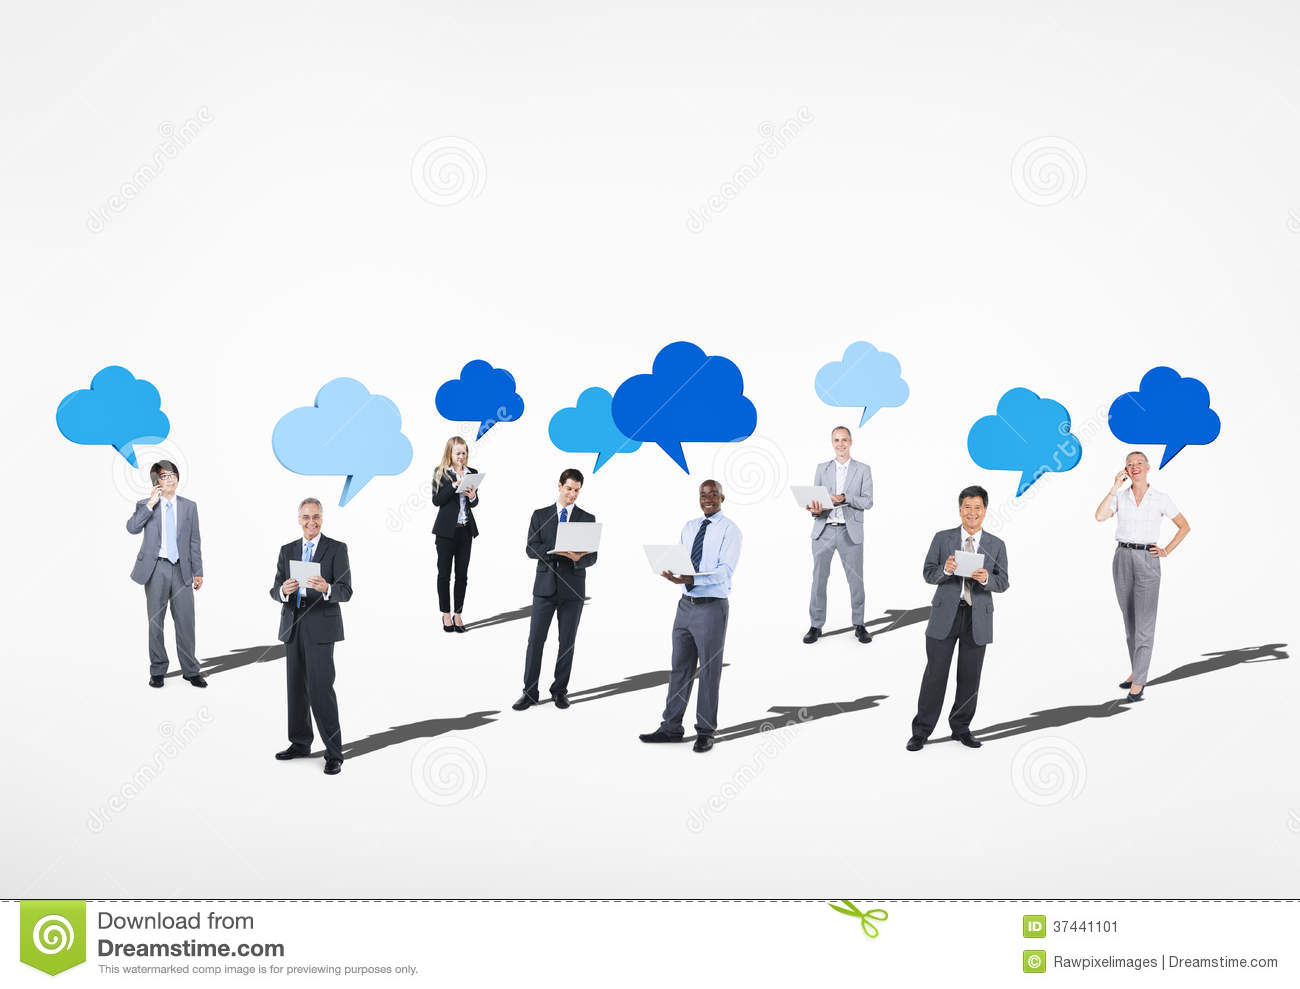 global business communication Global communication in business because there are so many different ways communication can fail in a global context, businesses must be diligent in reducing as many potential errors as possible, especially those related to differences in language and culture.